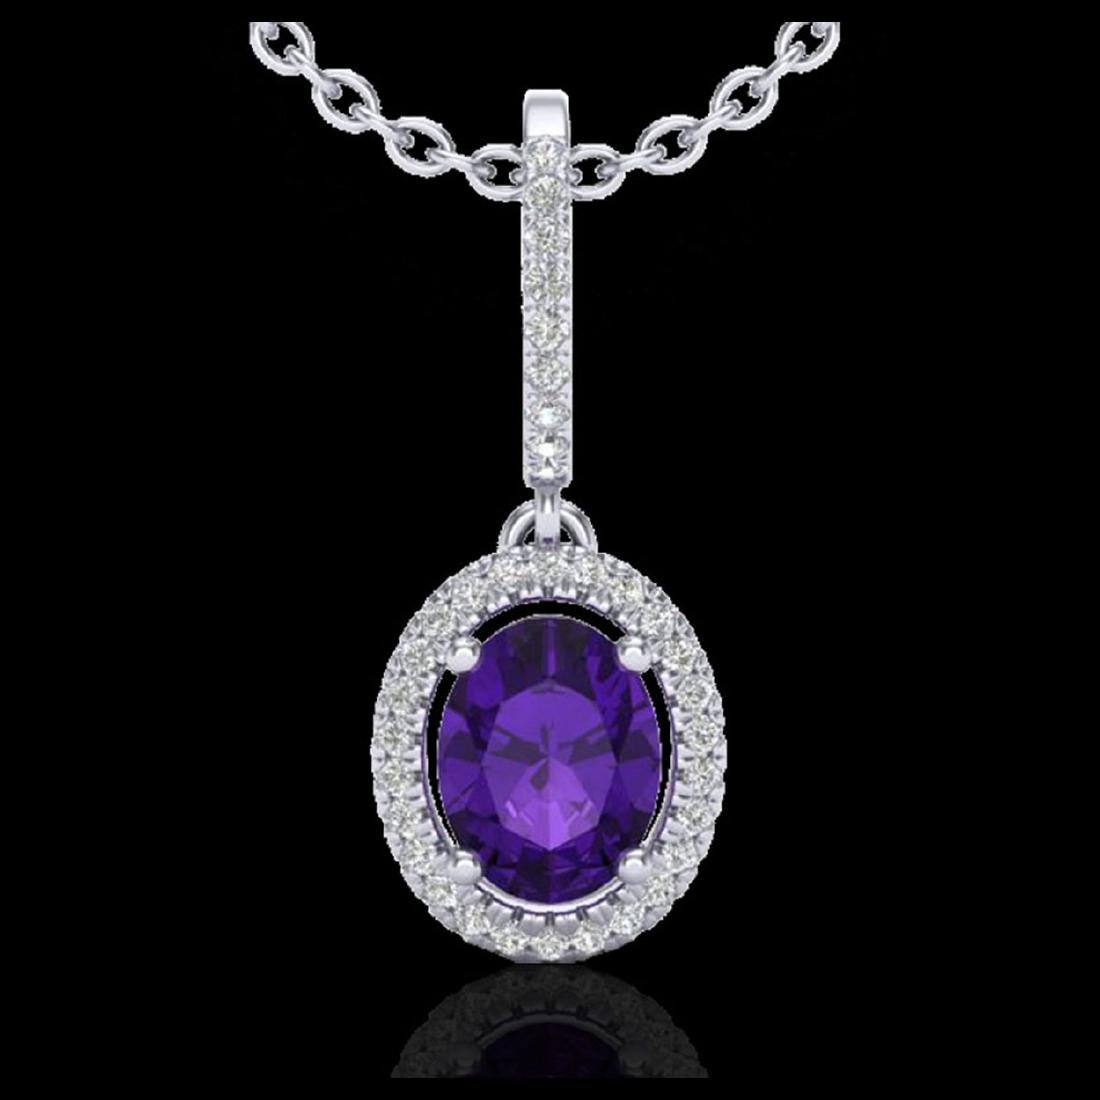 1.75 CTW Amethyst & Micro Pave VS/SI Diamond Necklace